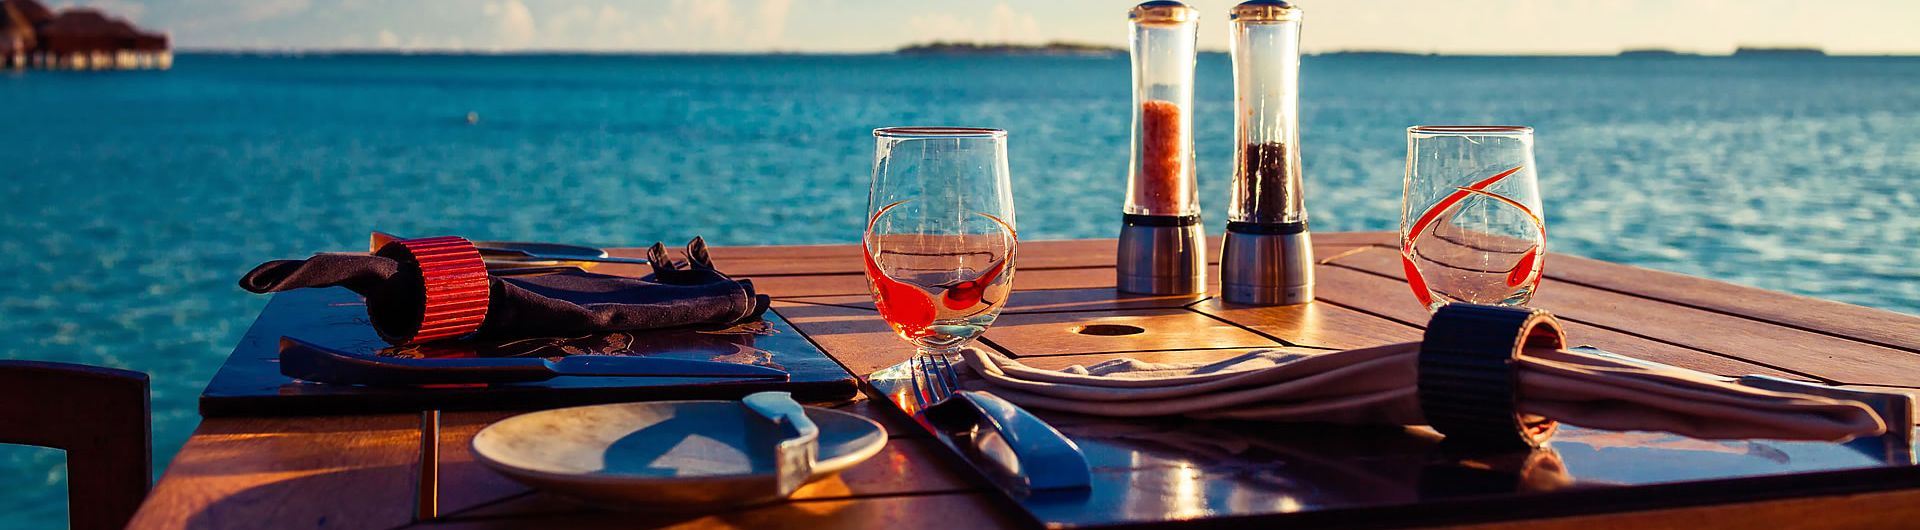 Table setting overlooking lake at sunset